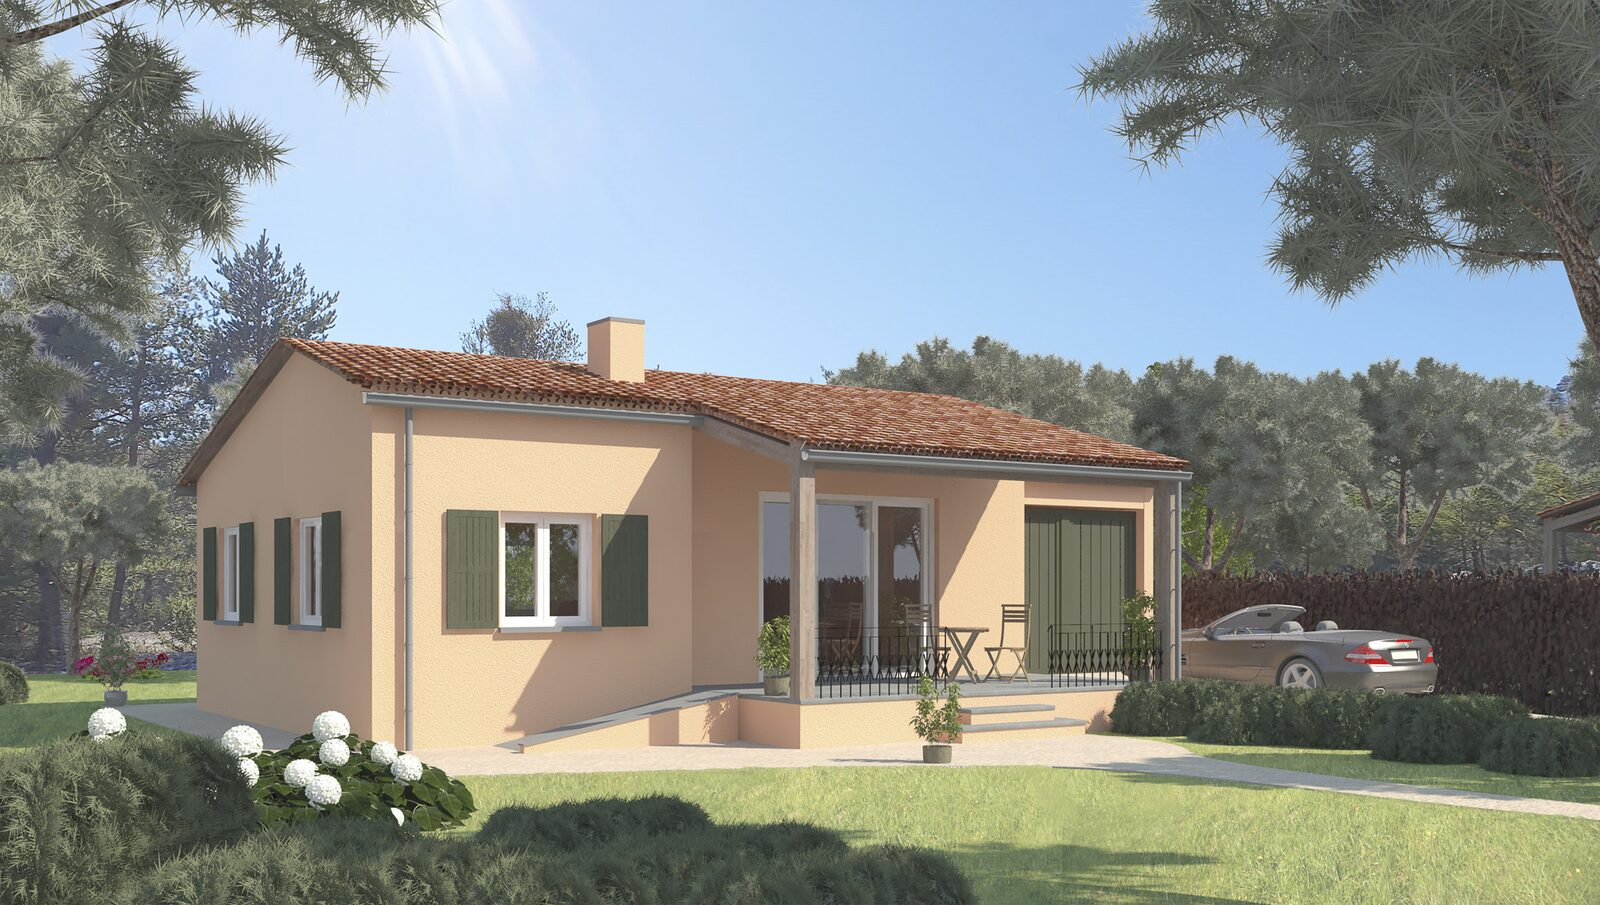 Three-room villa for four persons - type 2